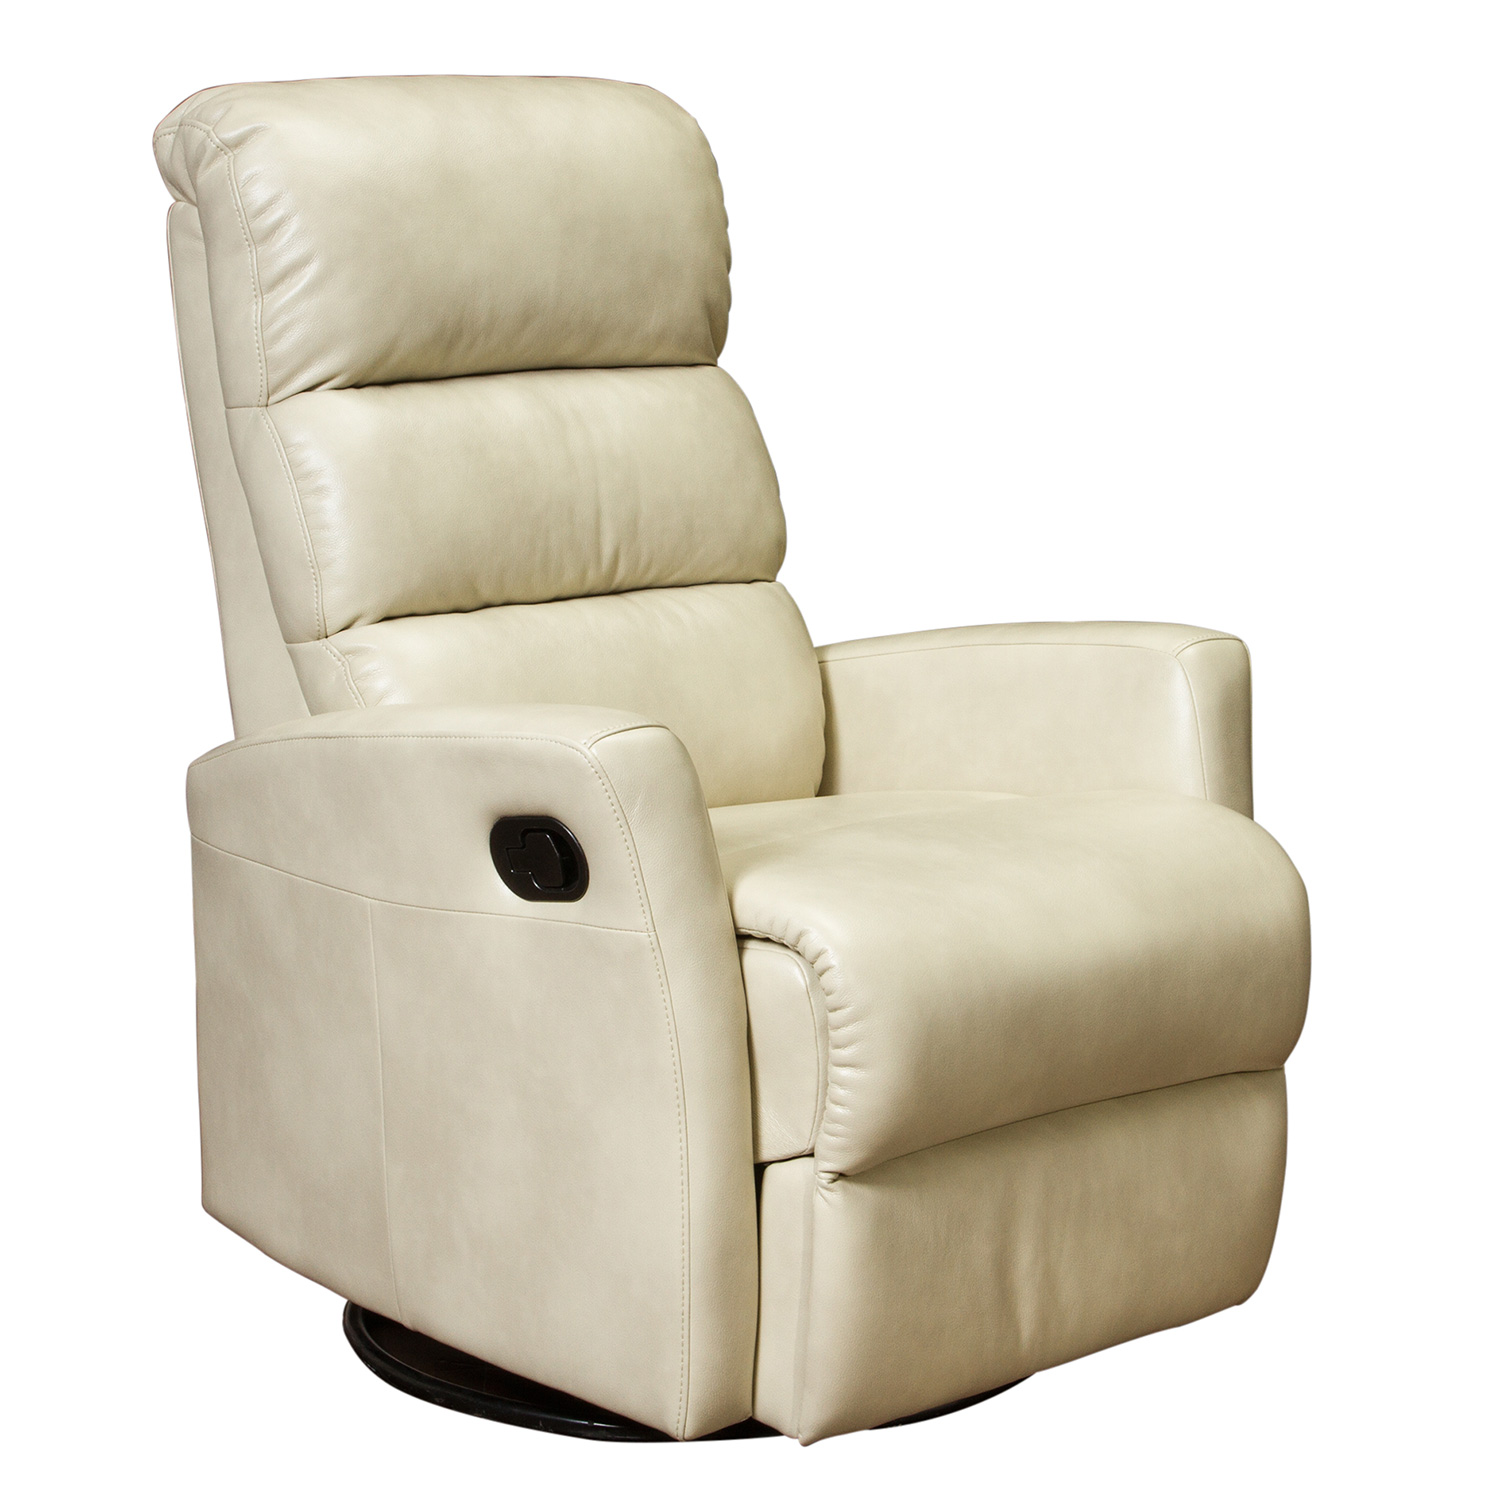 BarcaLounger 8 3062 2110 80 Khloe Swivel Glider Recliner in